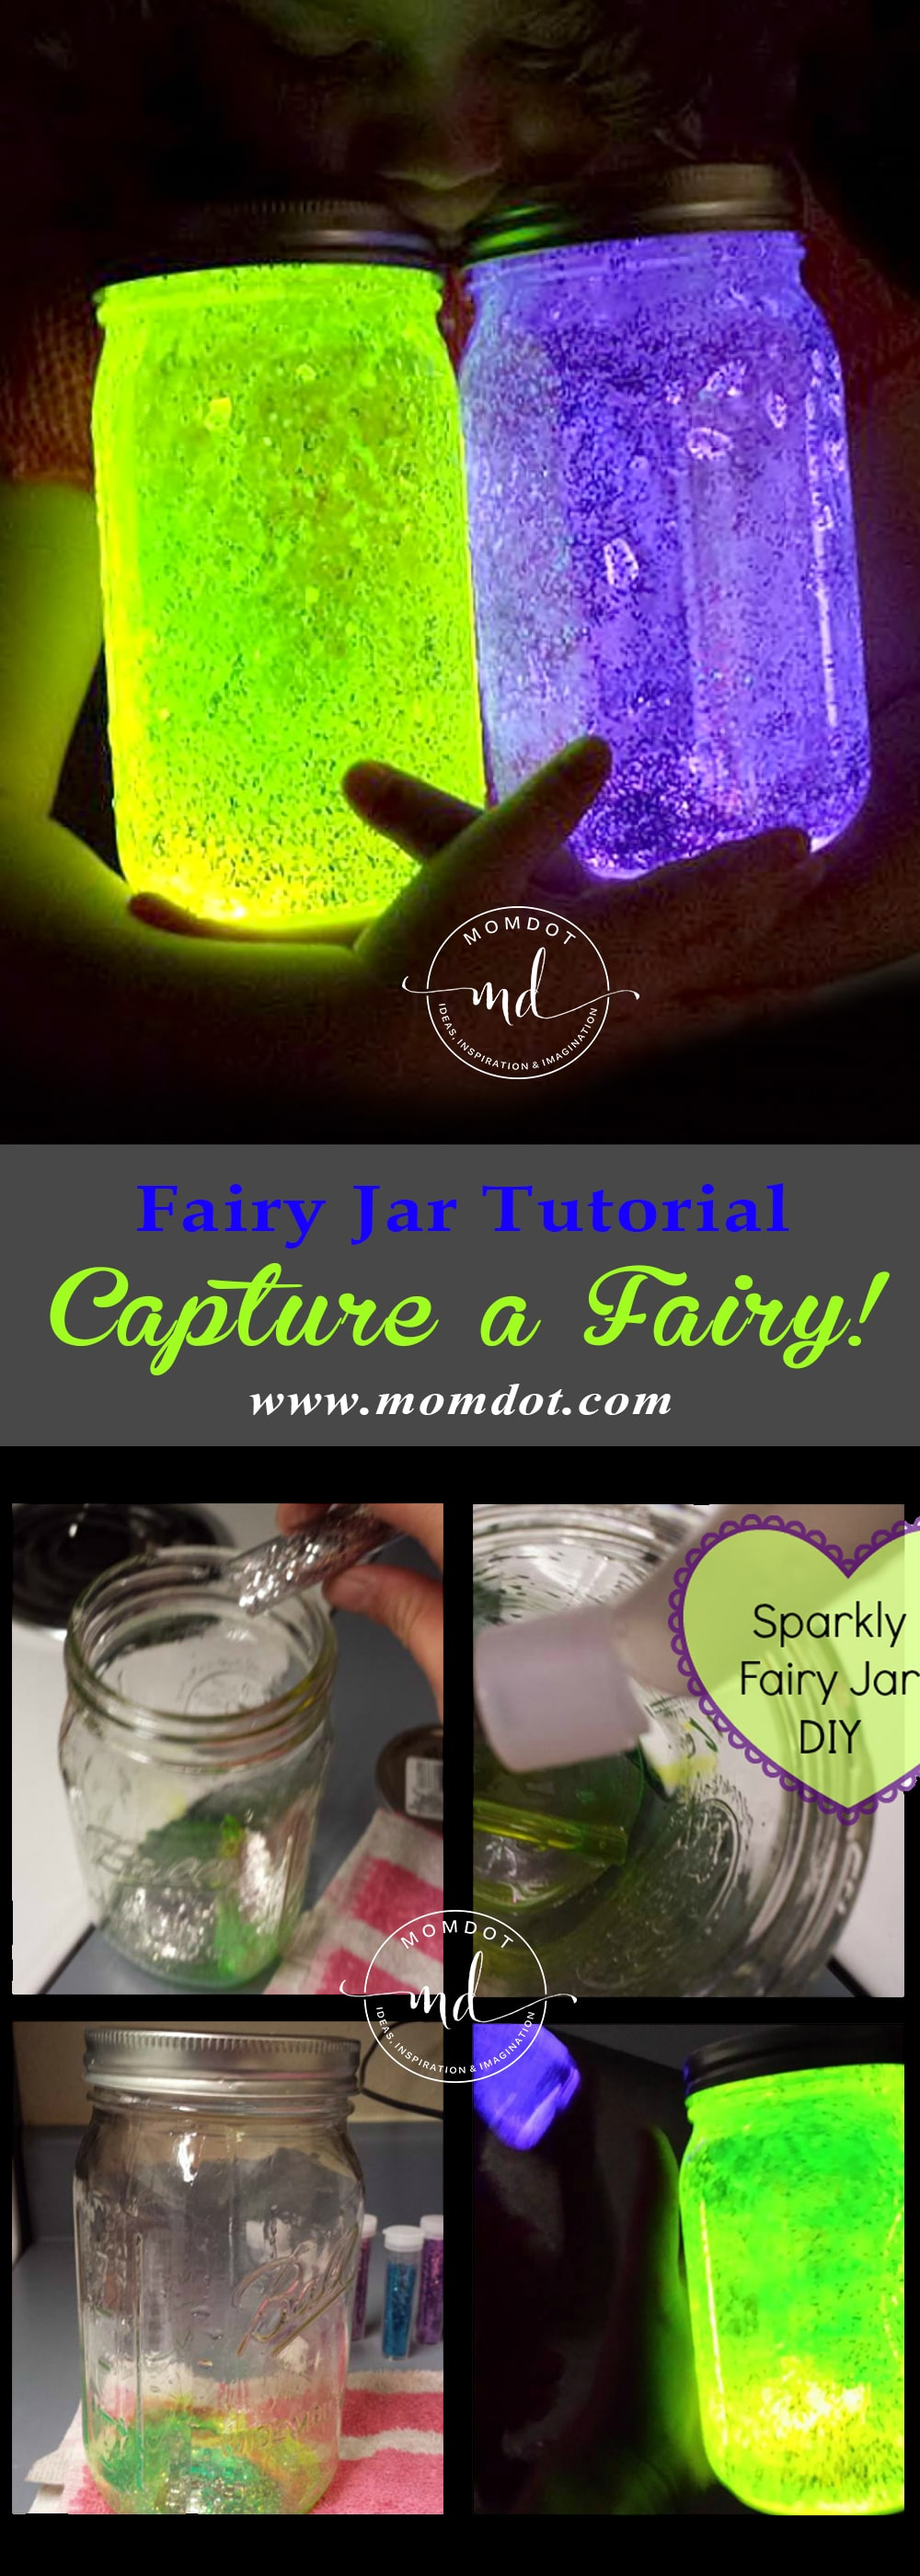 Fairy Jar Tutorial Diy And Capture A Fairy